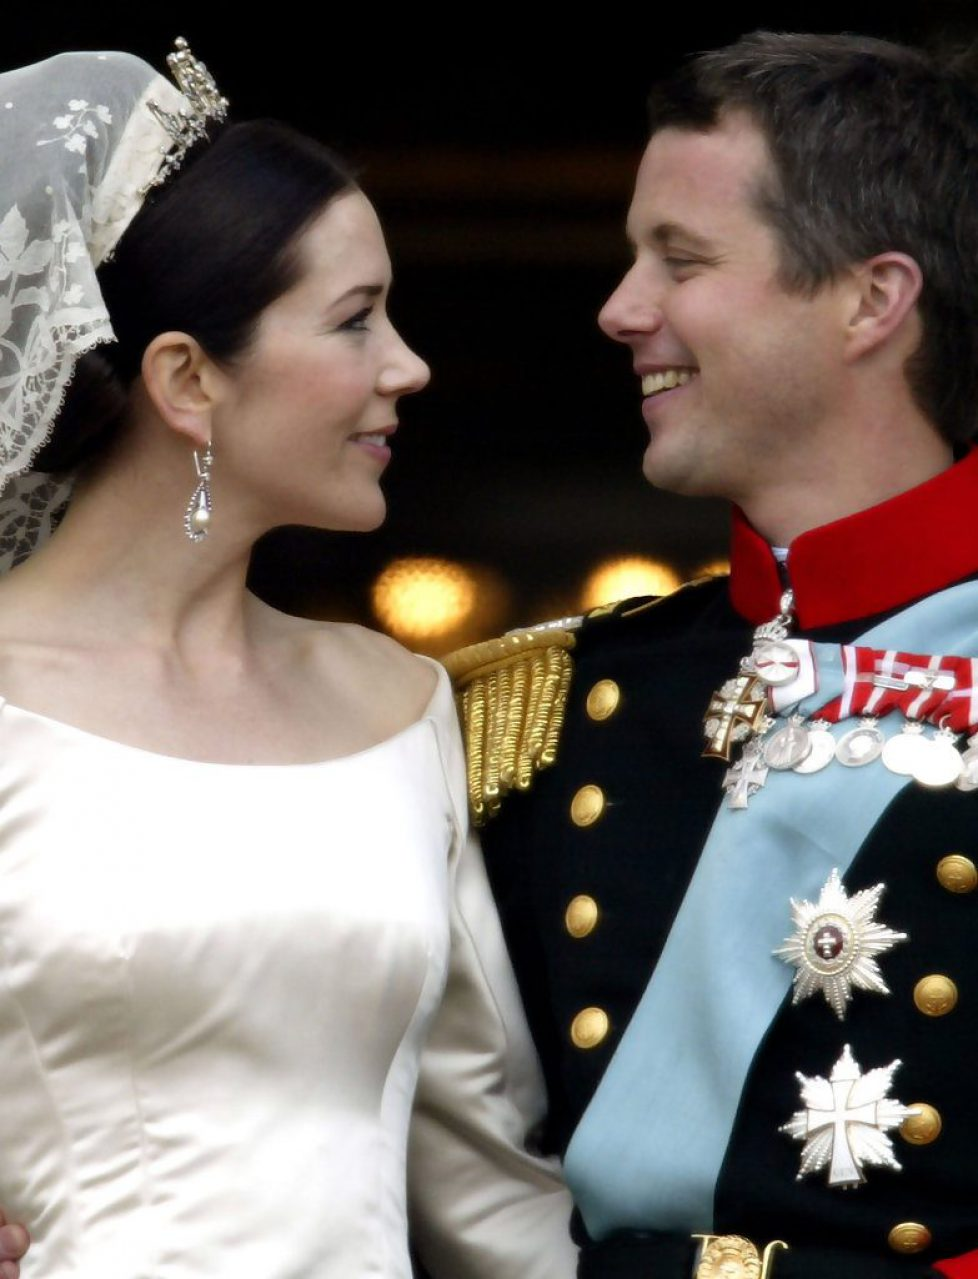 Wedding+Danish+Crown+Prince+Frederik+Mary+pkzKbjsOu6Ox